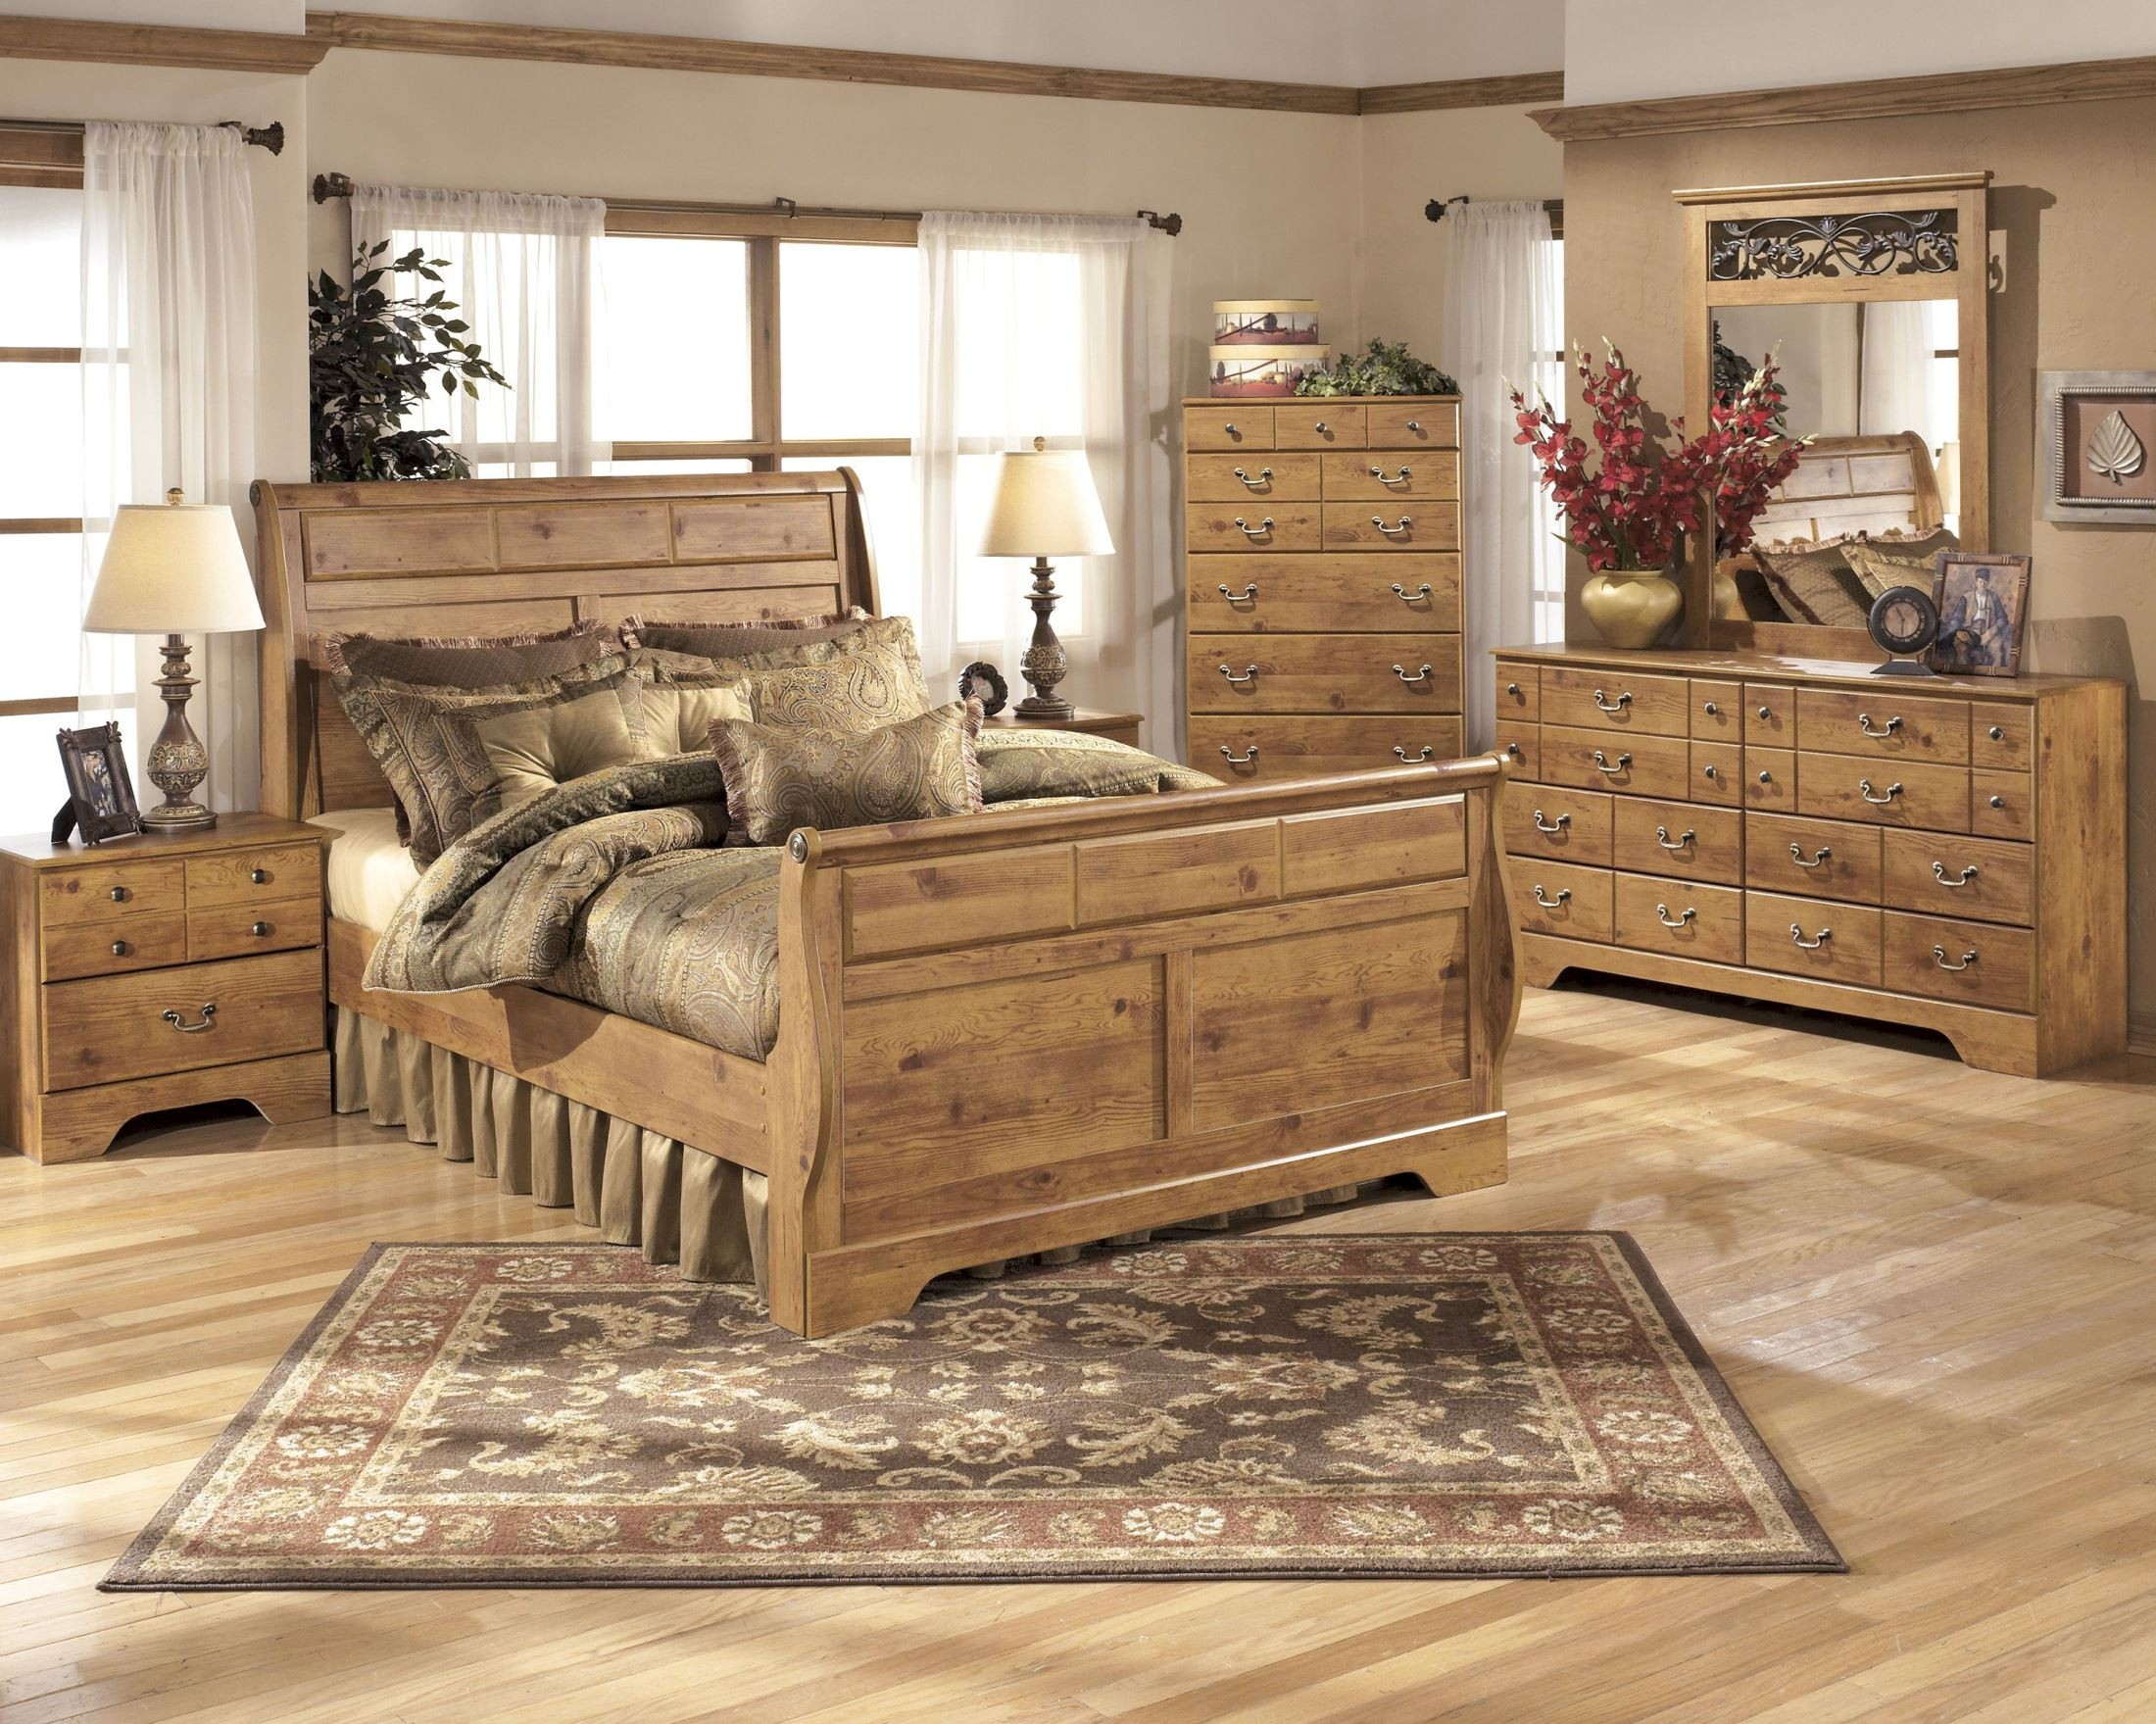 Bittersweet sleigh bedroom set from ashley b219 65 63 86 for Country style bedroom suites